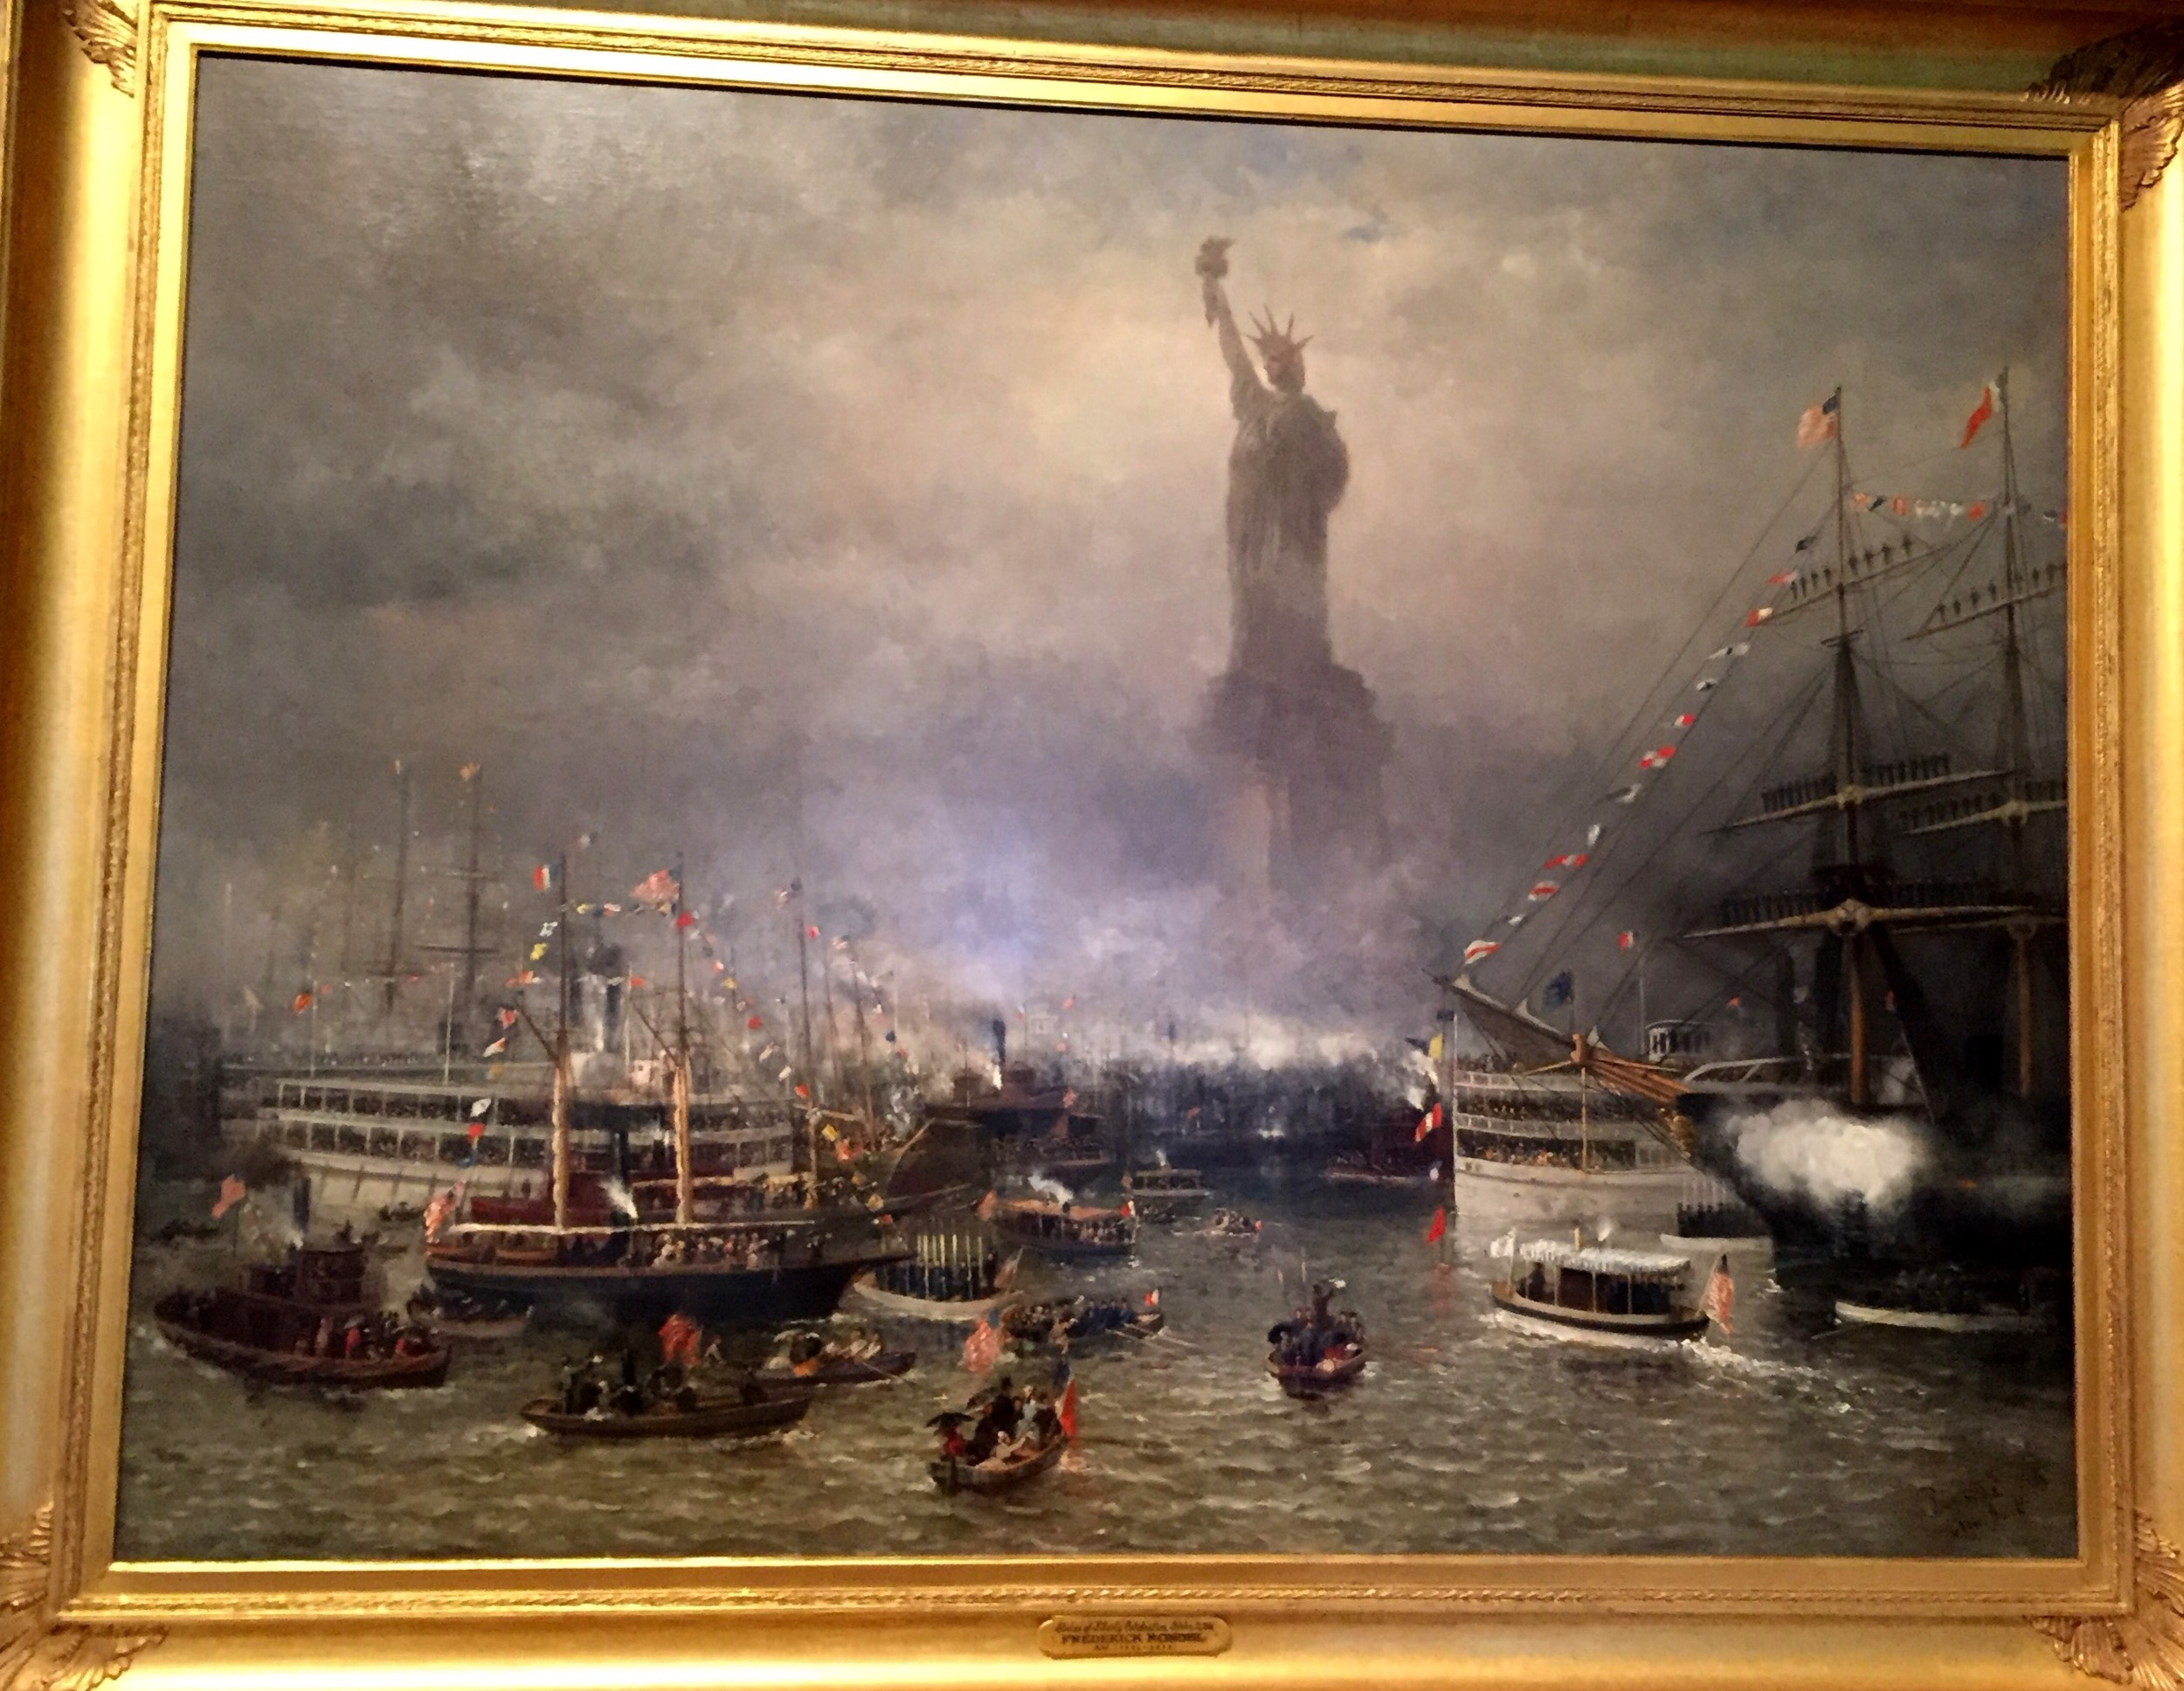 Statue of Liberty Celebration  by Frederick Rondel, American, 1826-1892.